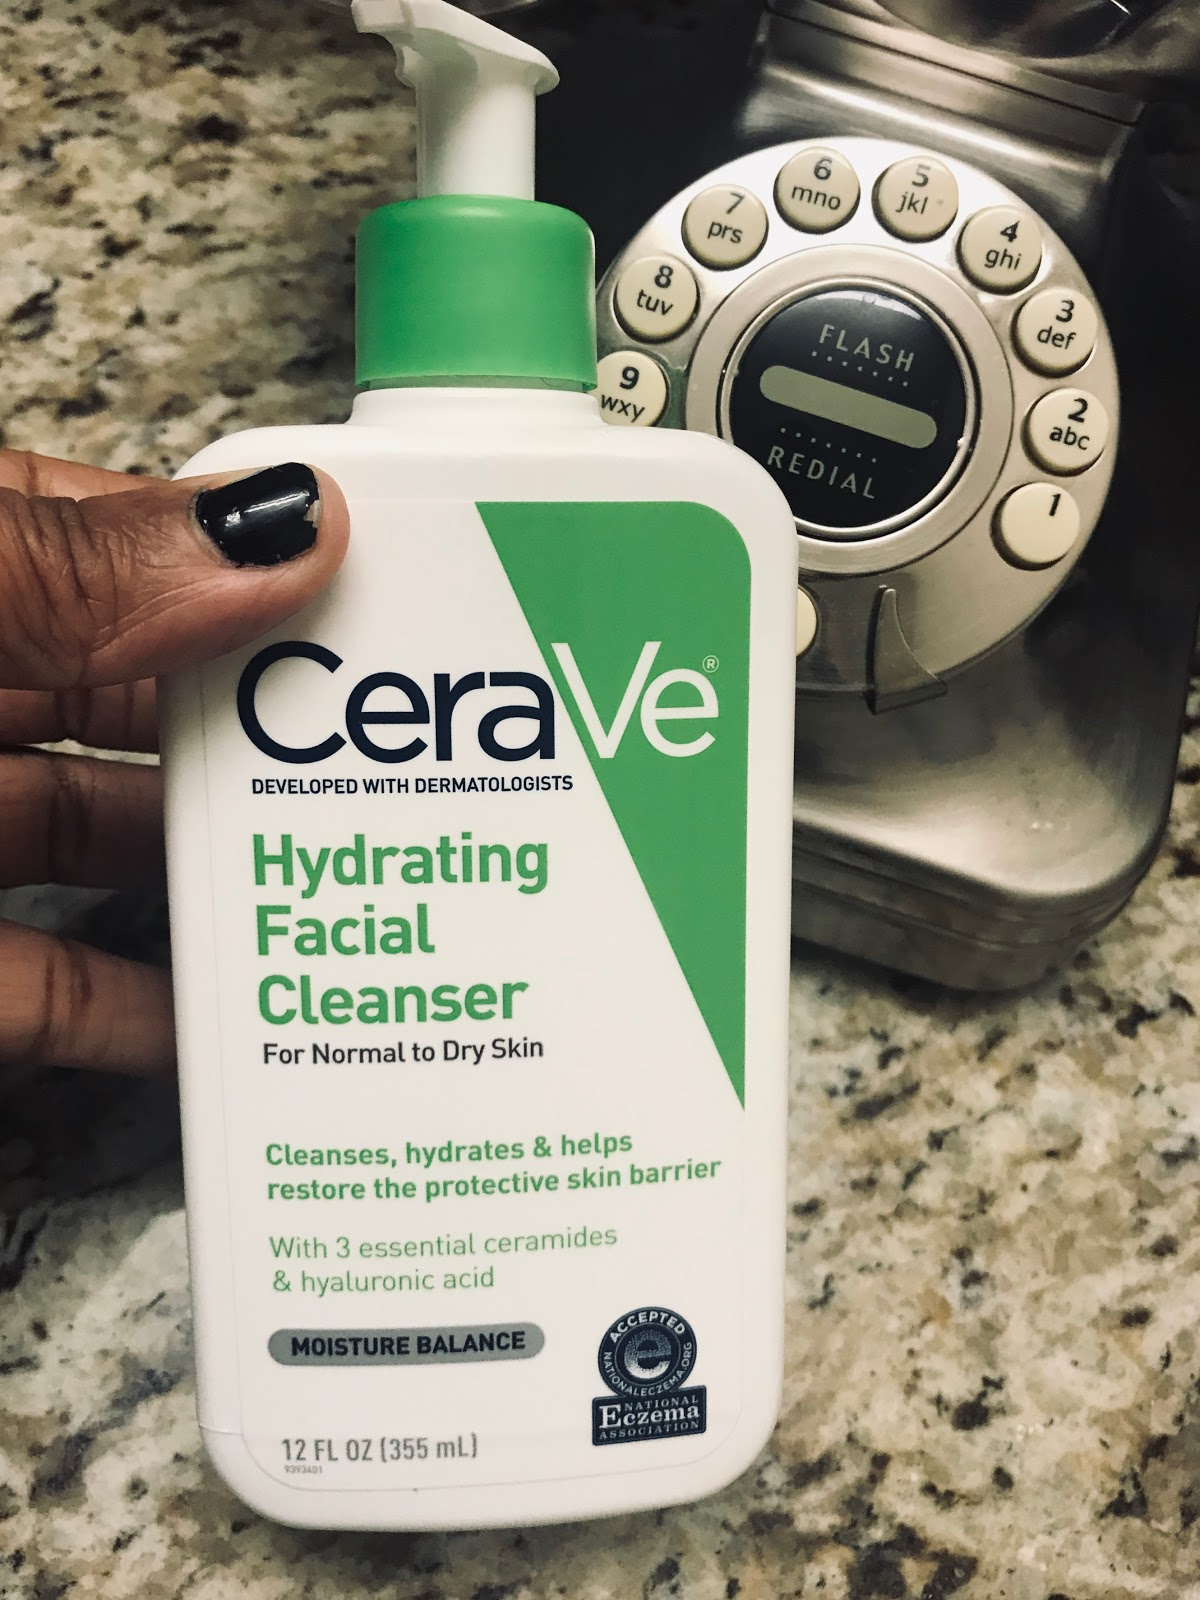 Image: Woman sharing review about Cerave Hydrating Facial Cleanser. The first thing I purchased was the Hydrating Facial Cleanser: The results after two weeks have made an enormous difference in the texture and feel of my skin.  I did get the one that is for normal to dry skin. Because of the bottle saying it cleanses, hydrates and helps restore the protective skin barrier.  Also, it has three essential ceramides with hyaluronic acid included which helps with moisture balance. I also chose the Cervae line of products because it is fragrance-free and non-comedogenic which won't clog pores.